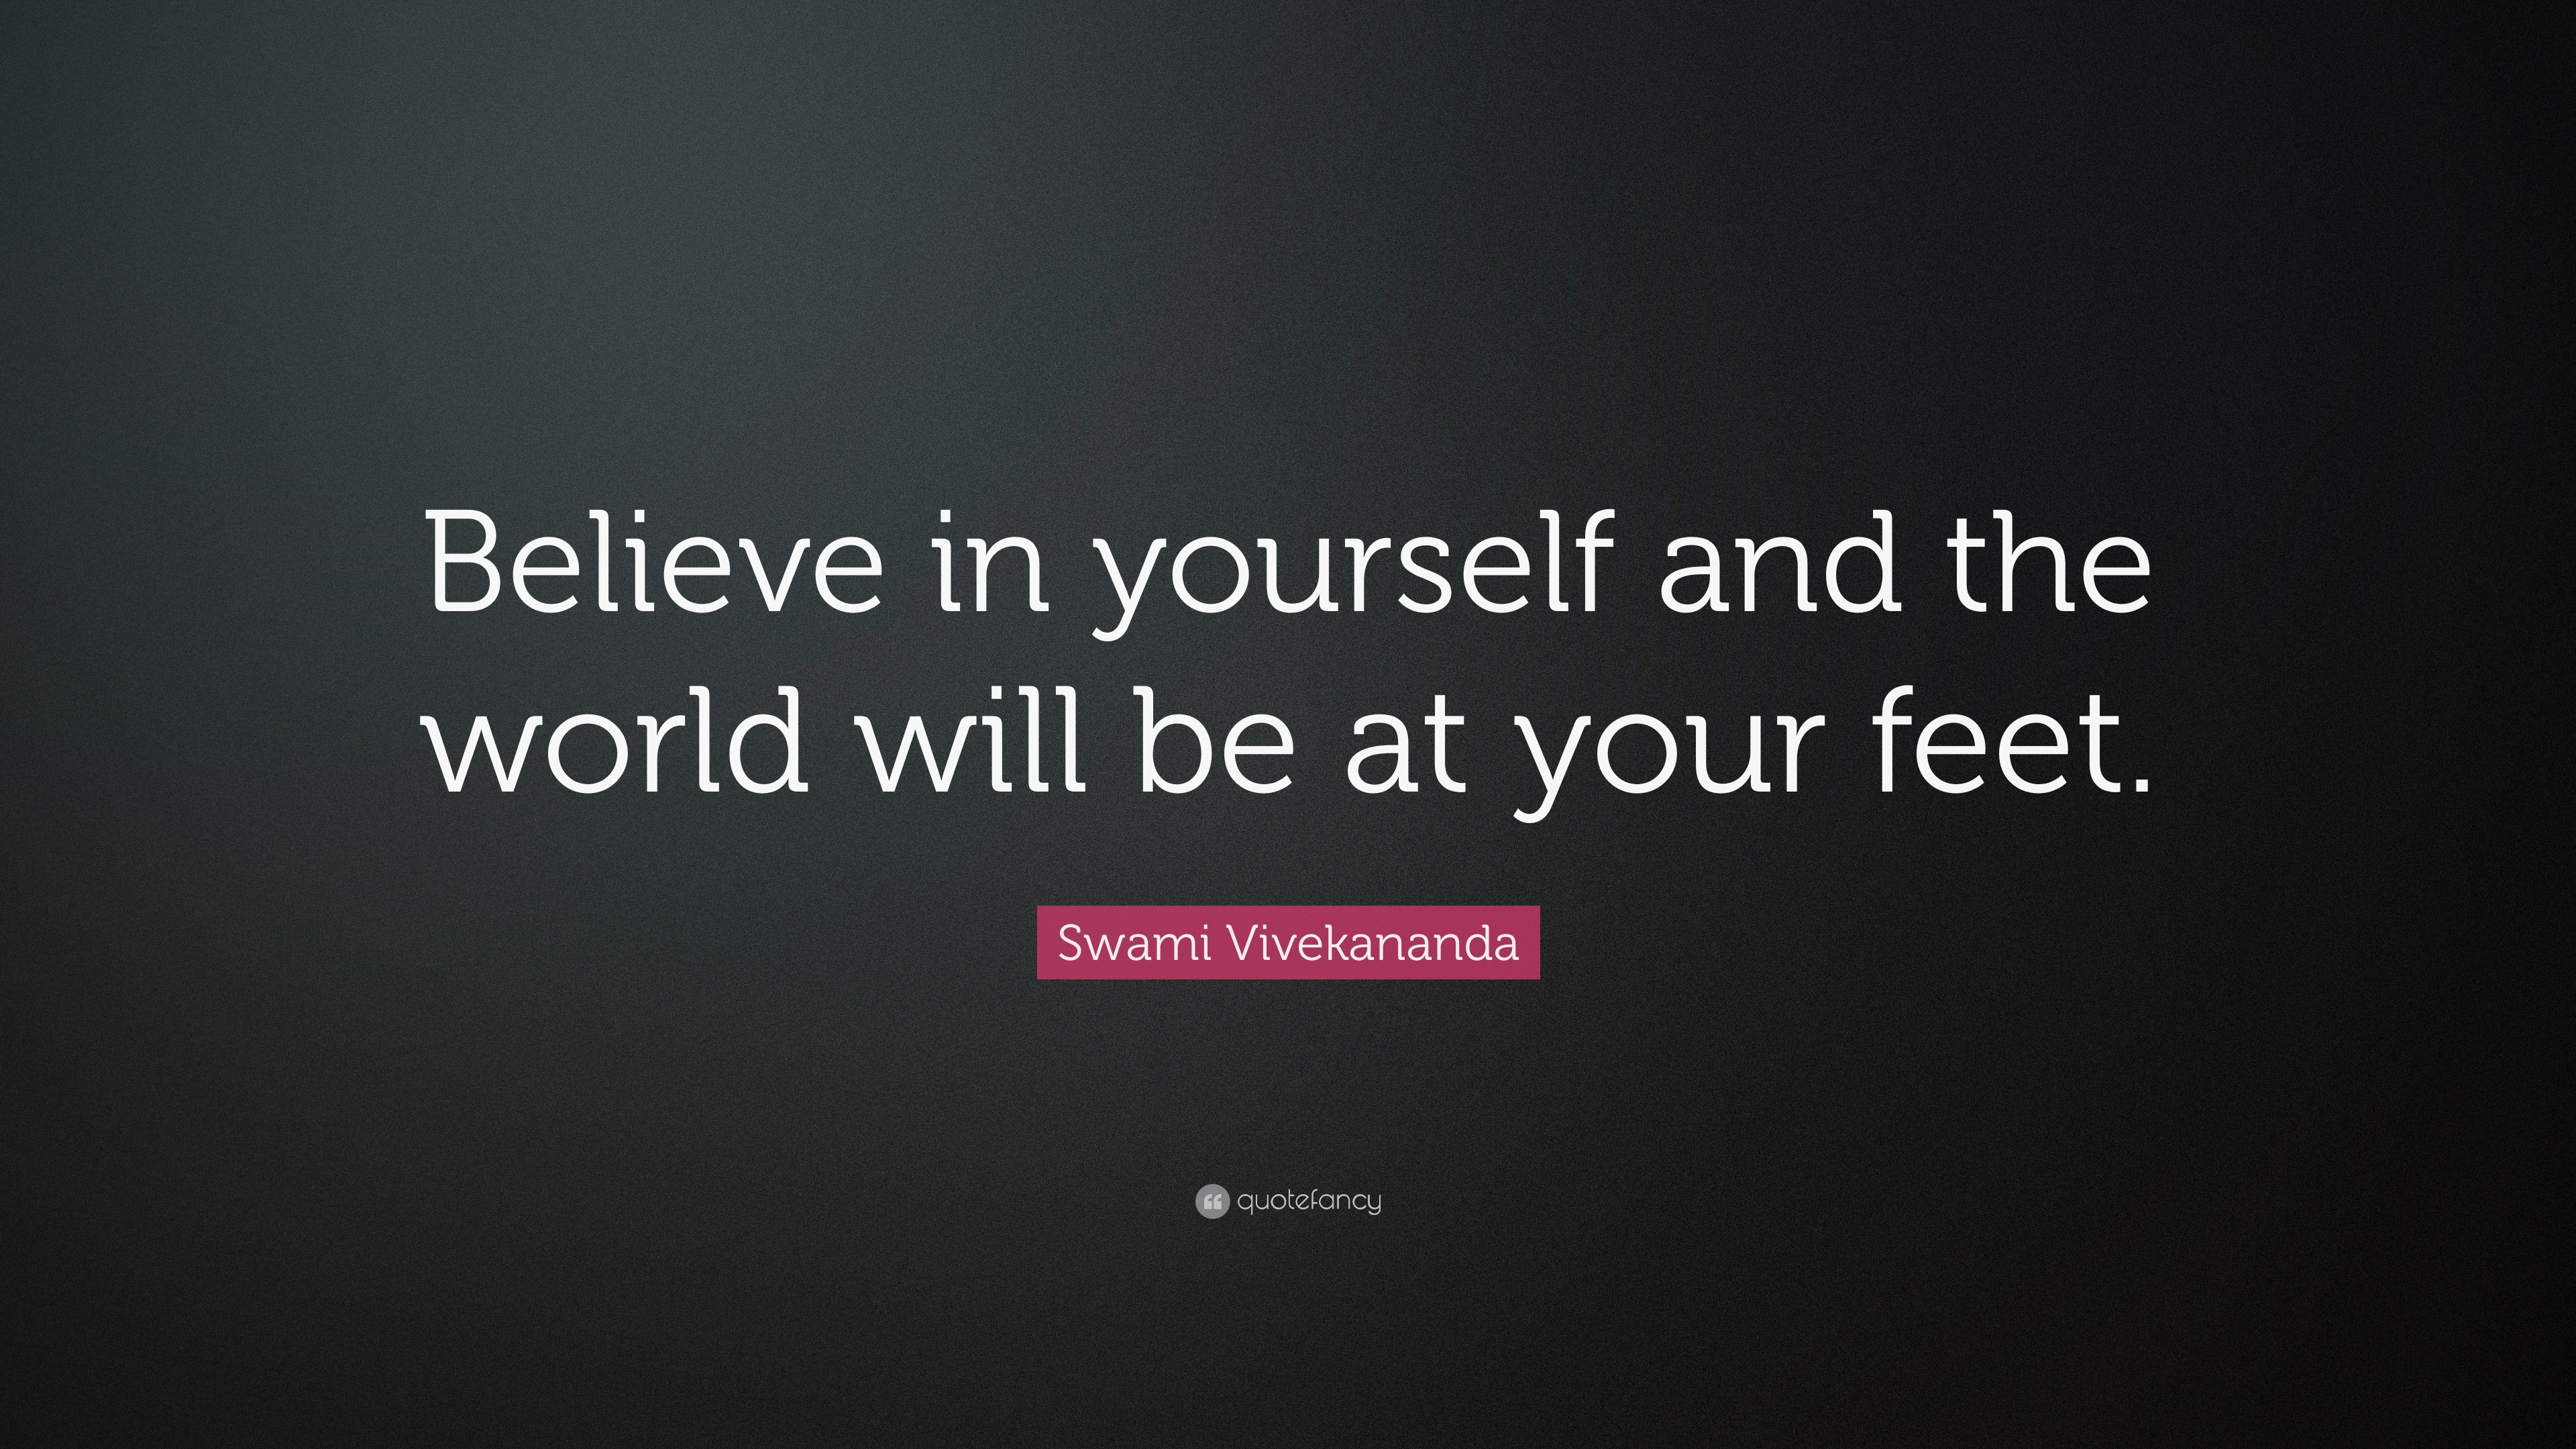 Believe in yourself and the world will be at your feet. Swami Vivekananda